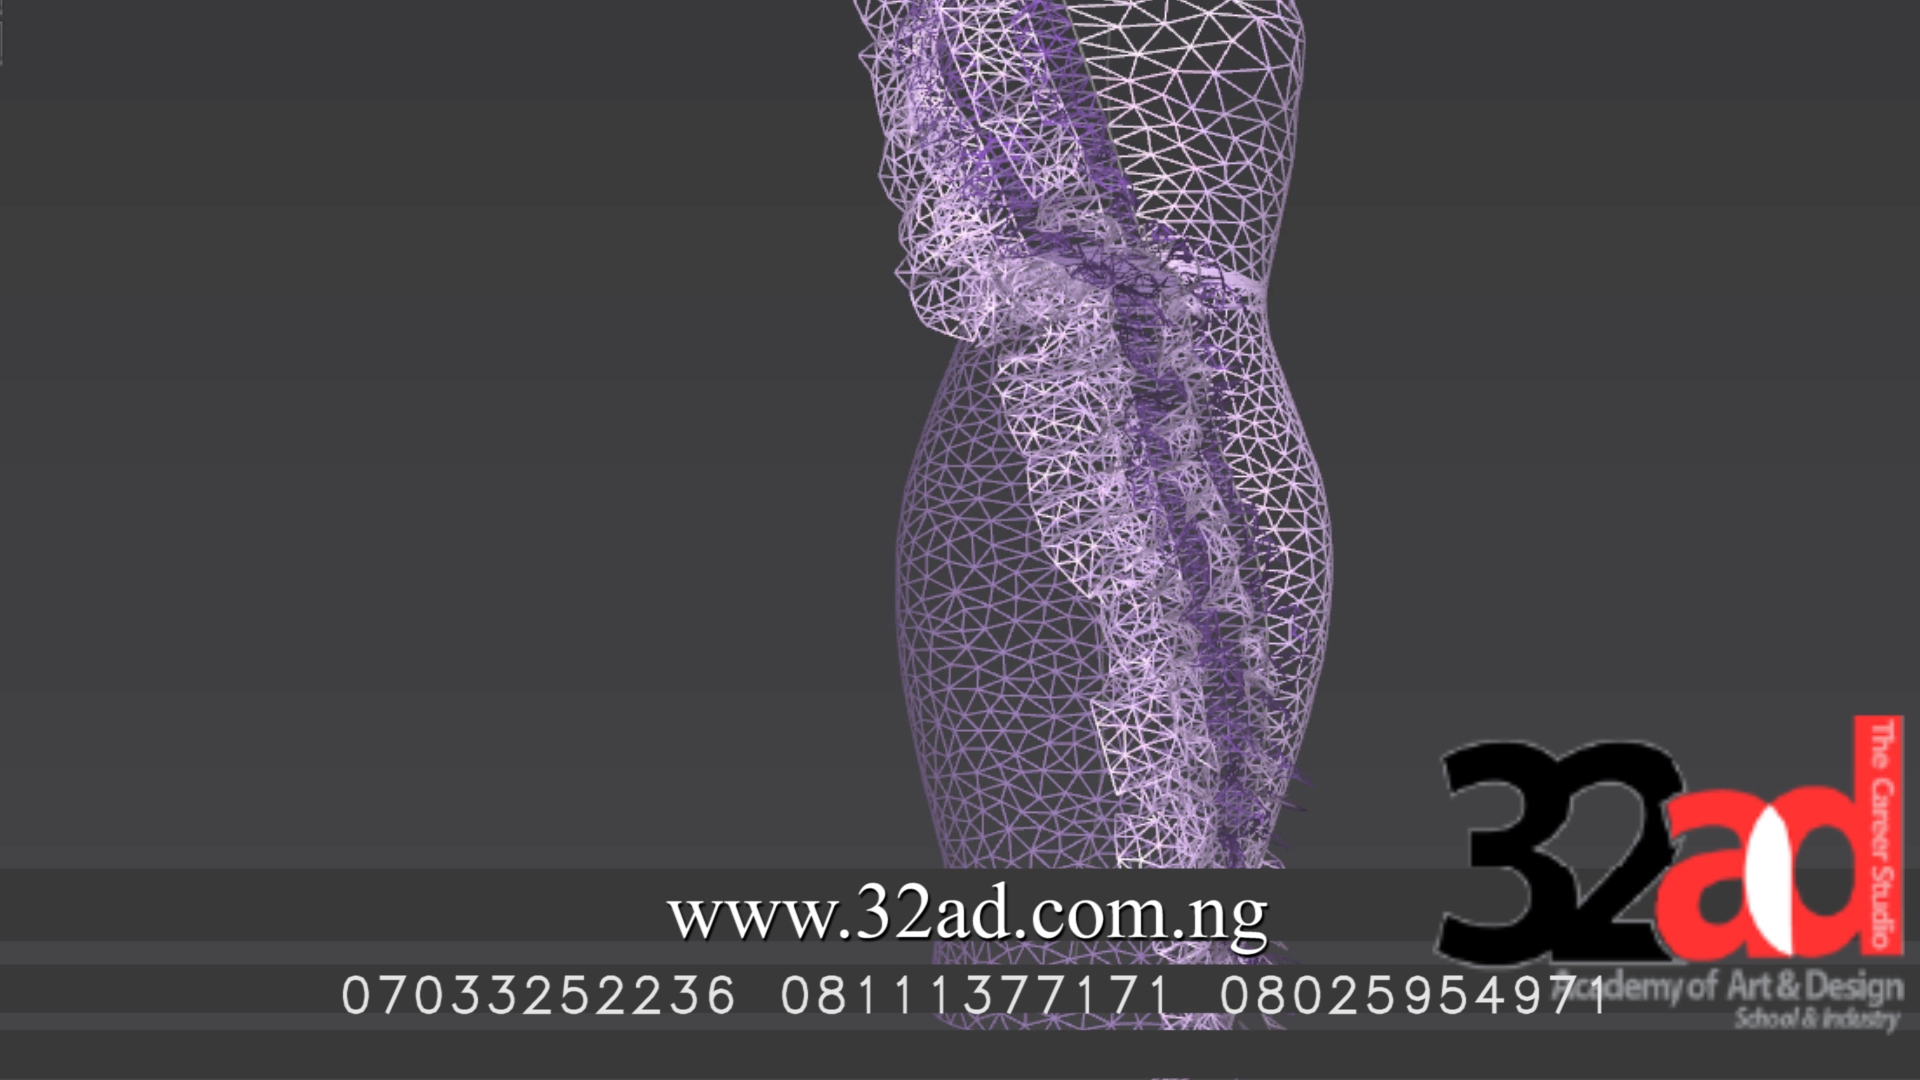 Digital Fashion Visualization 3D model